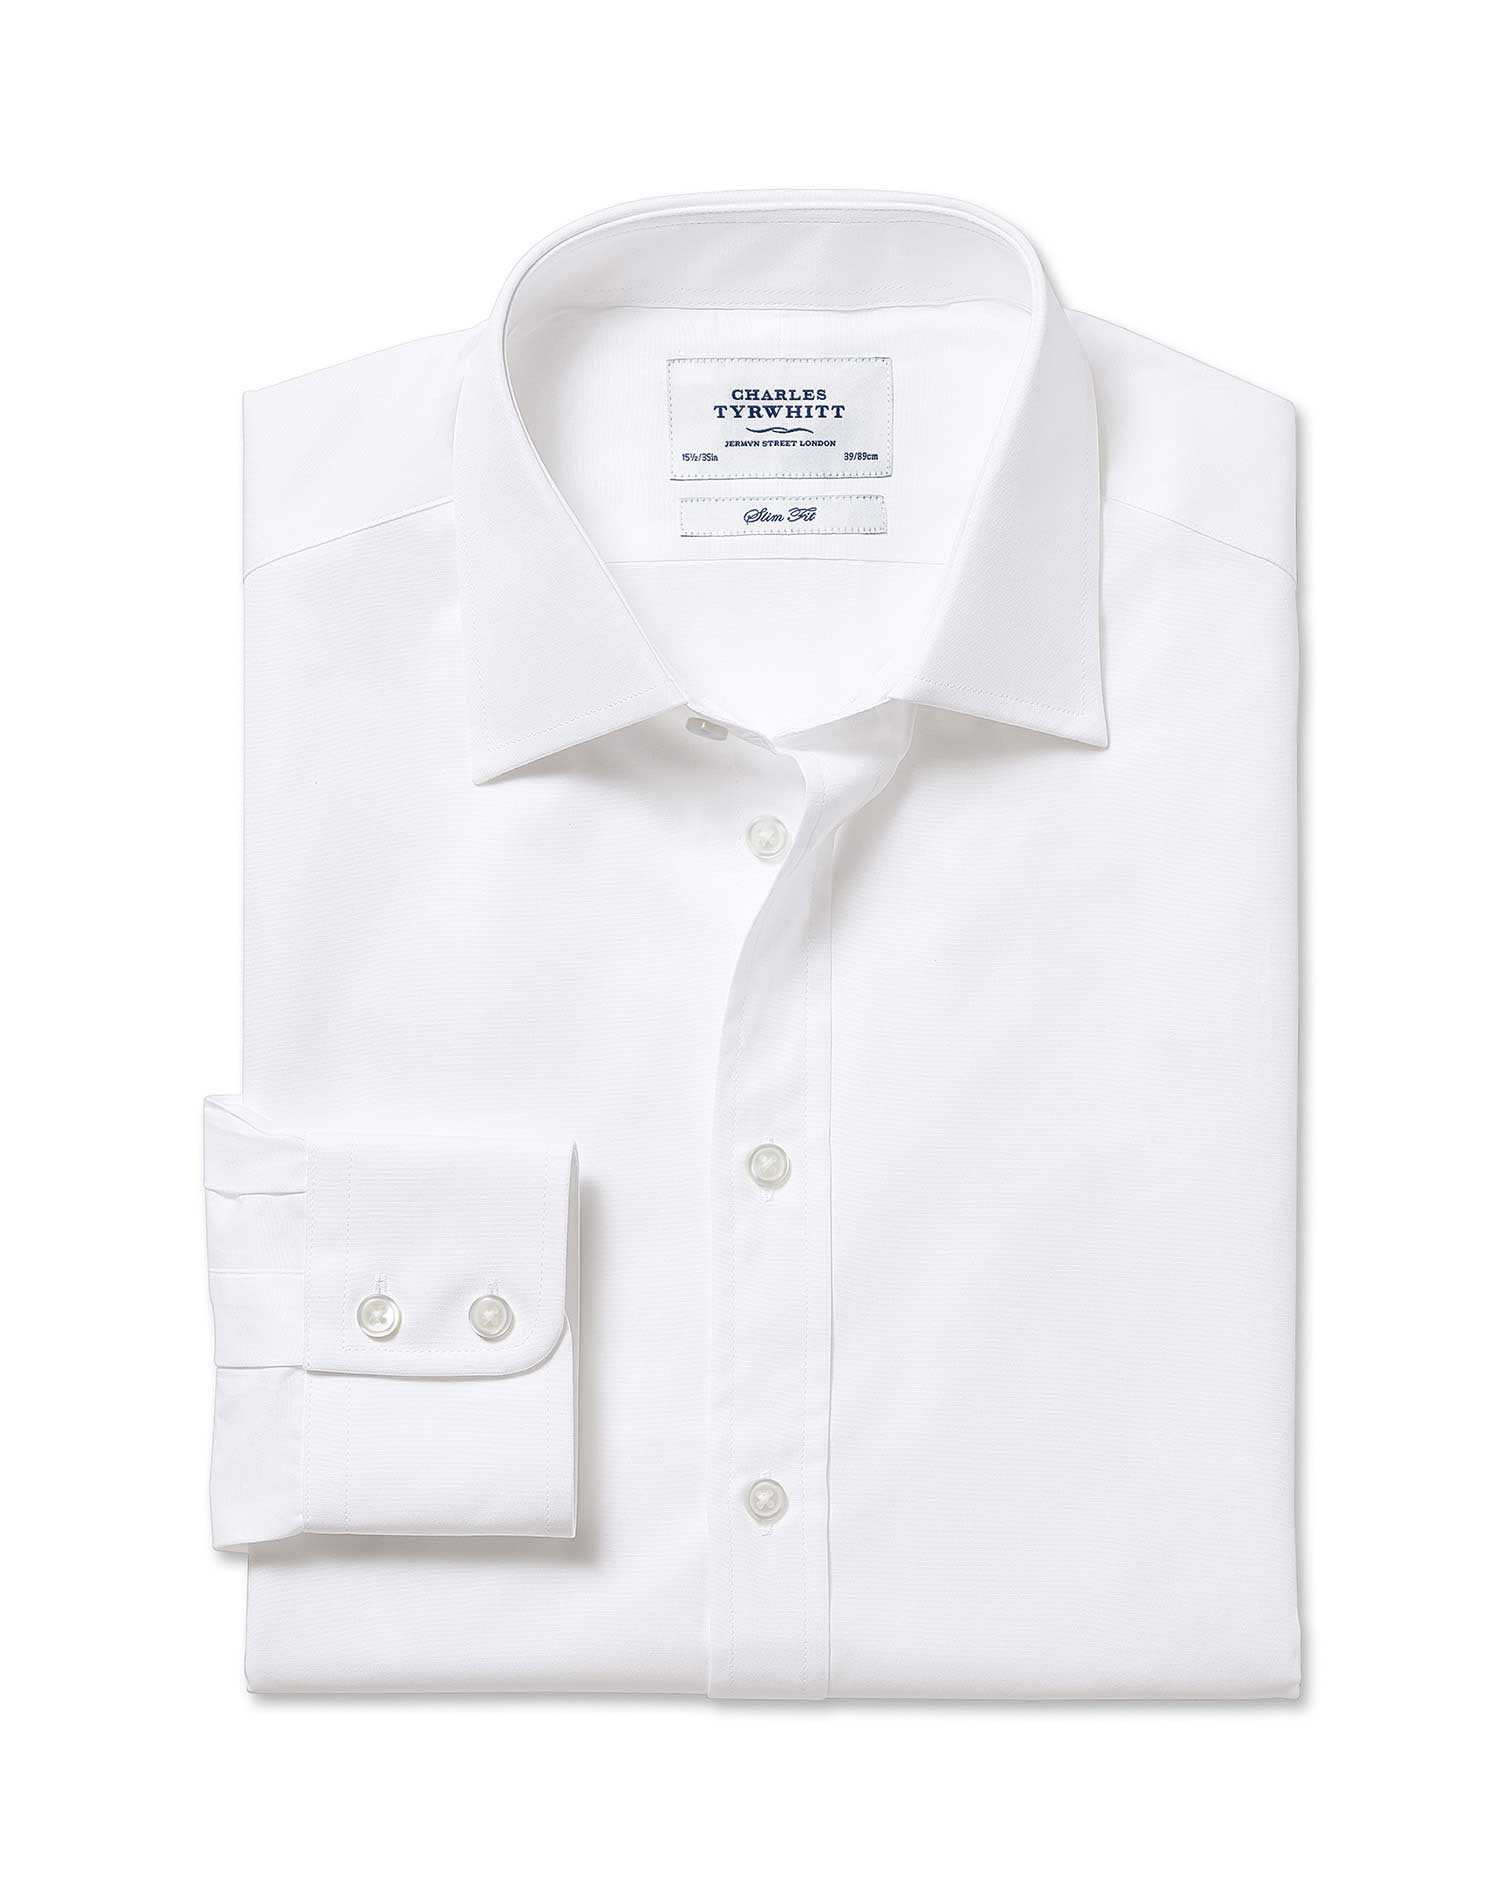 Classic Fit Egyptian Cotton Poplin White Formal Shirt Single Cuff Size 18/36 by Charles Tyrwhitt